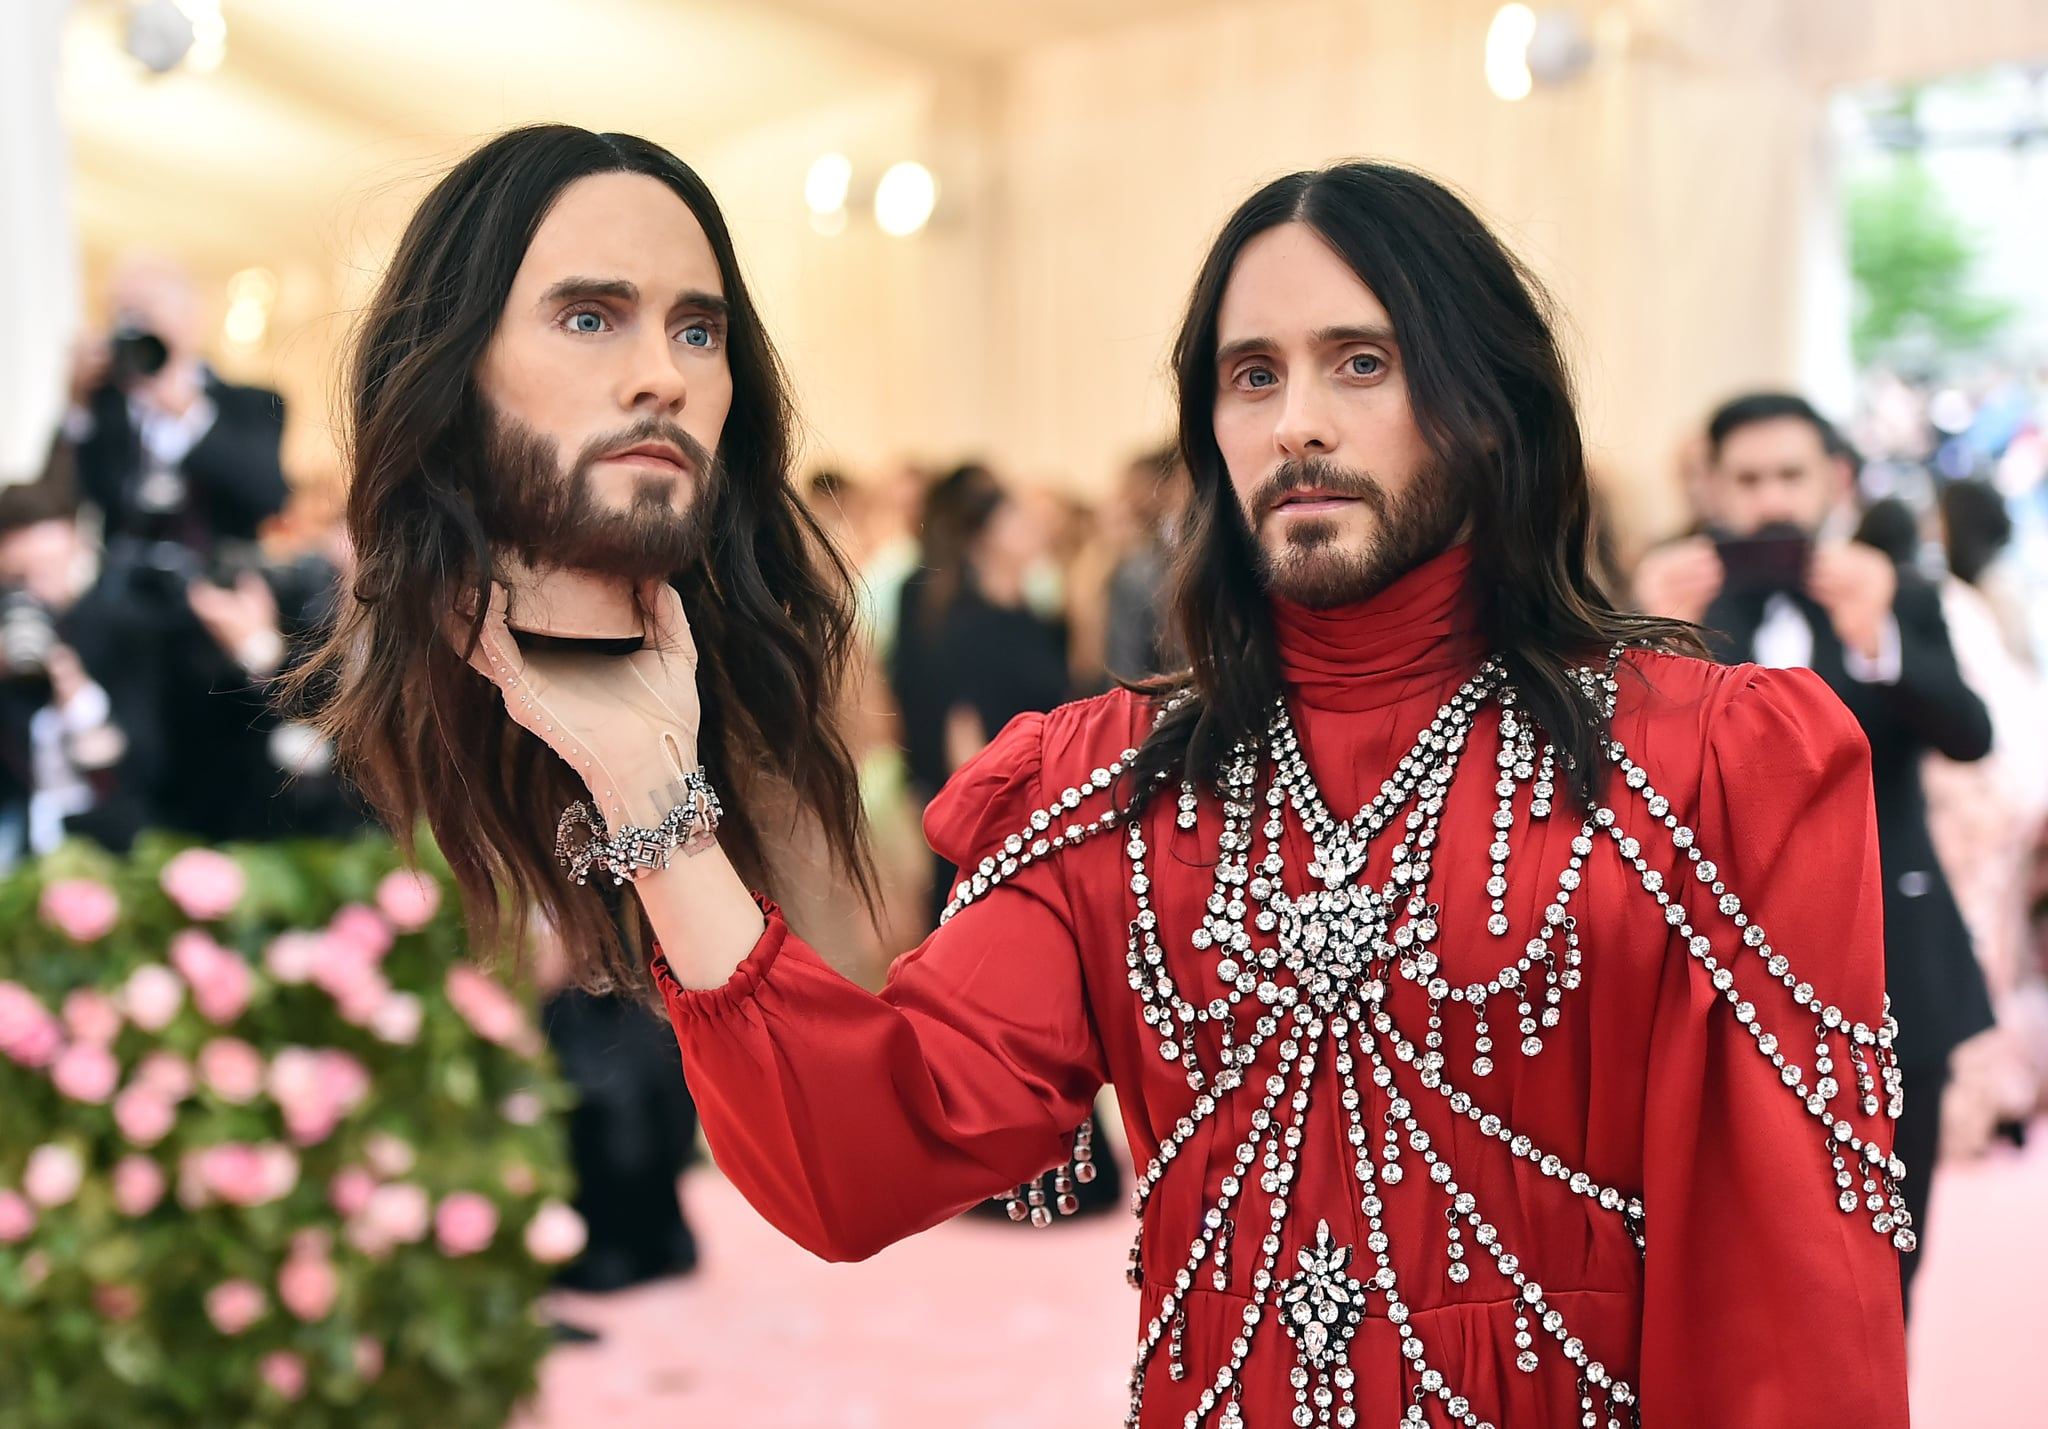 NEW YORK, NEW YORK - MAY 06: Jared Leto attends The 2019 Met Gala Celebrating Camp: Notes on Fashion at Metropolitan Museum of Art on May 06, 2019 in New York City. (Photo by Theo Wargo/WireImage)